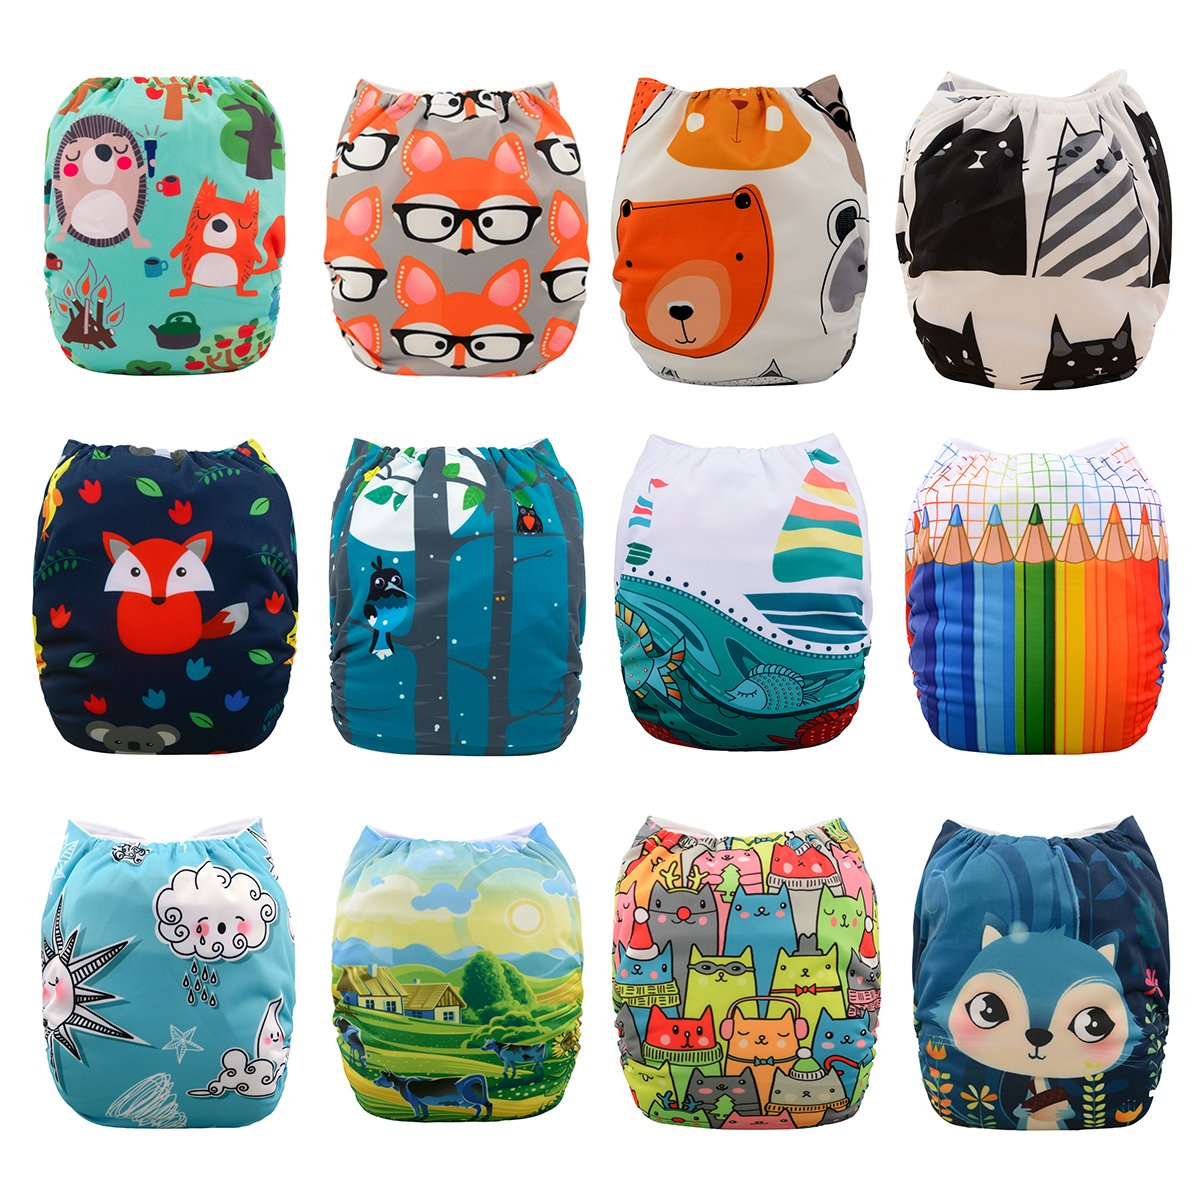 Babygoal Baby Cloth Diapers, One Size Adjustable Reusable Pocket Cloth Diaper Nappy 12pcs + 12pcs 5-layer Charcoal Bamboo Reusable Inserts+One Wet Bag+4pcs Baby Wipes 12FN07-3